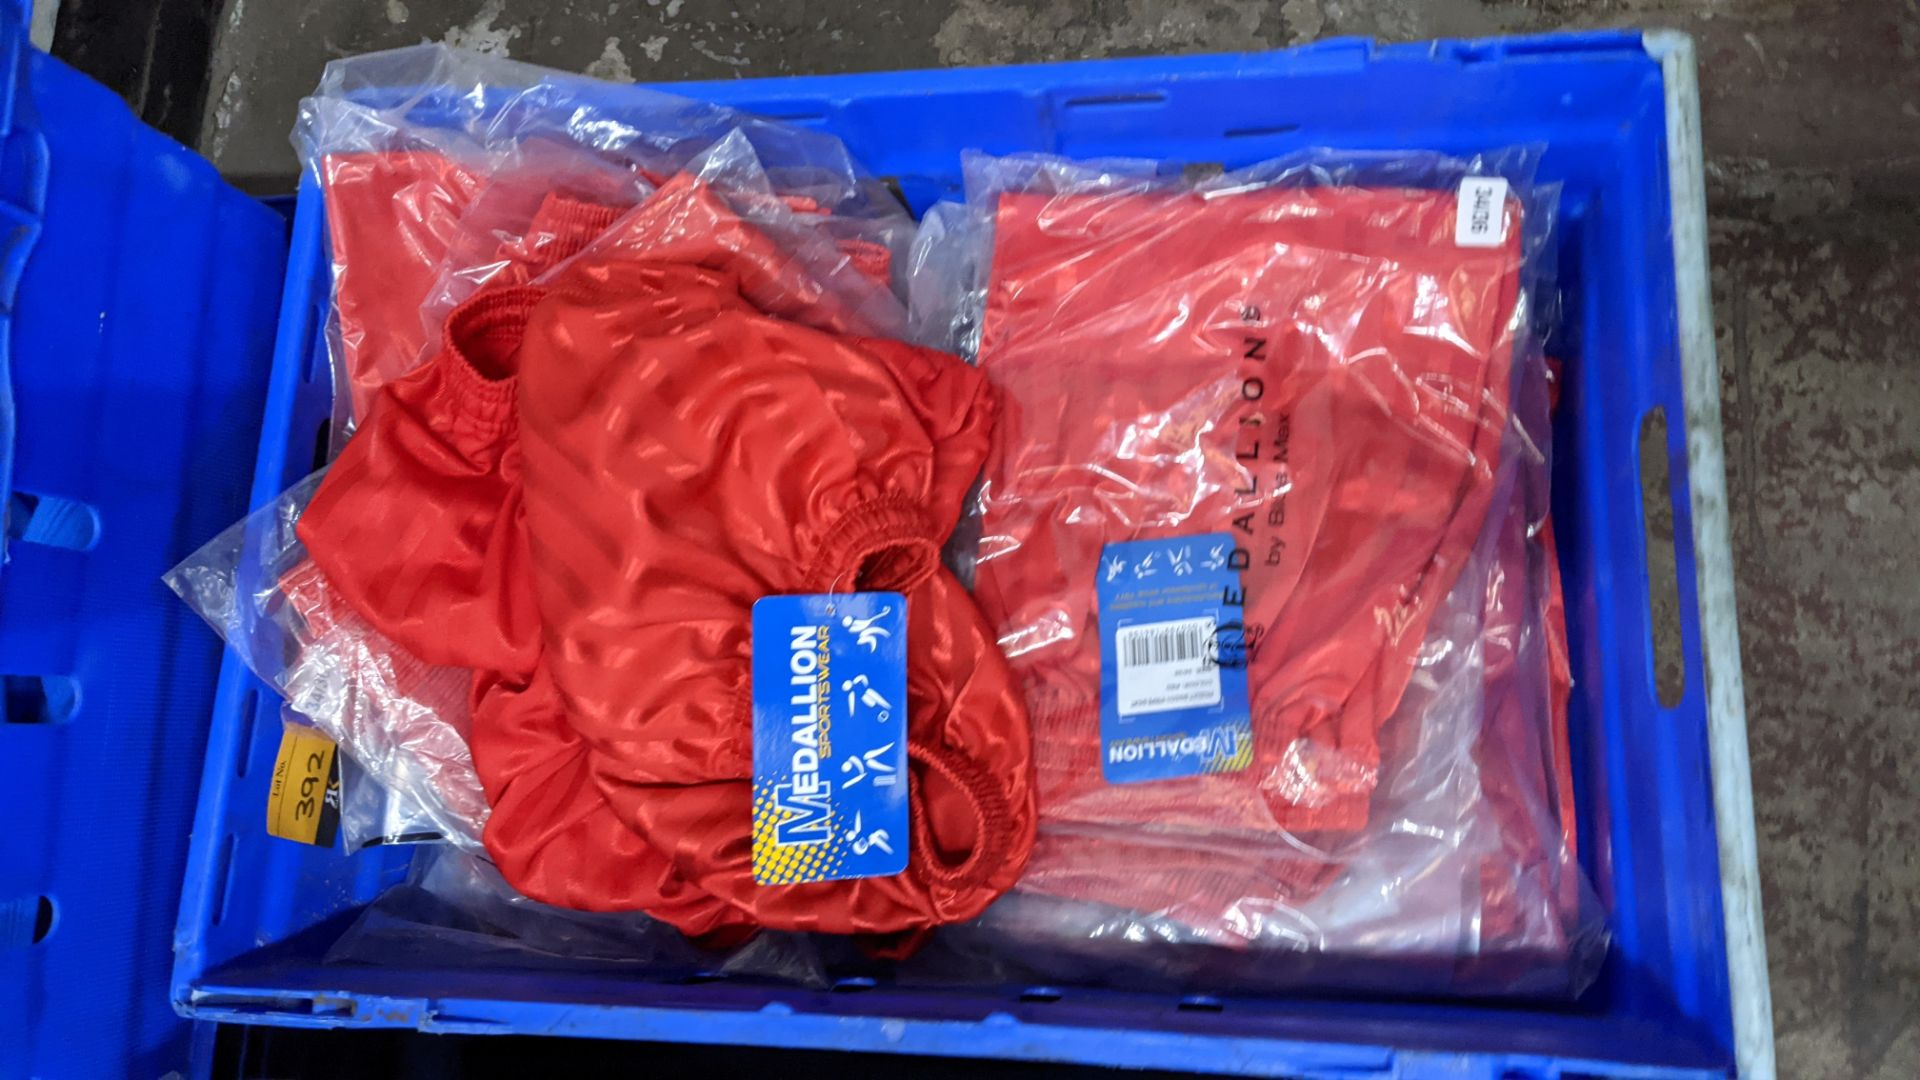 Approx 20 off red children's sports shorts - Image 2 of 5